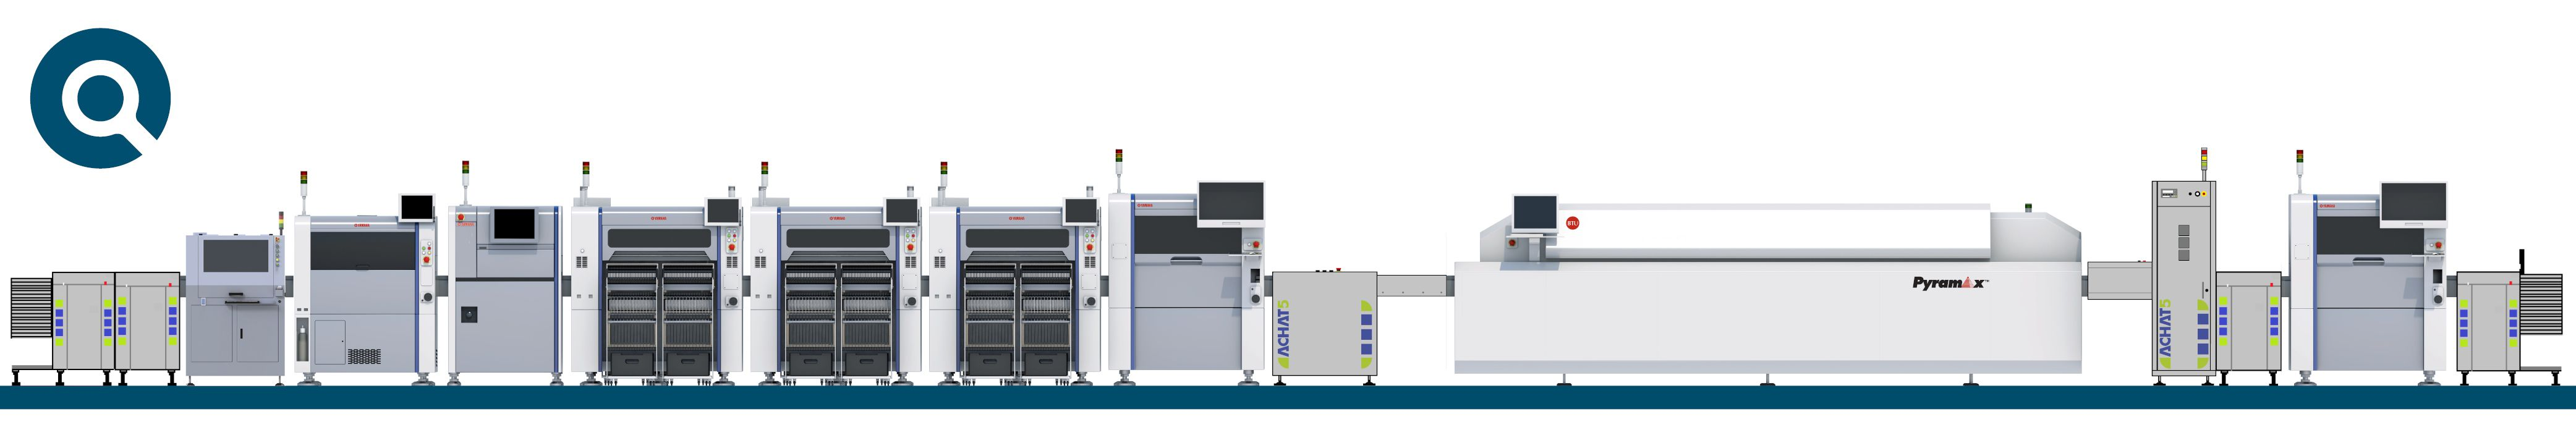 SMT line machinery displayed at Productronica that CORE-emt supply